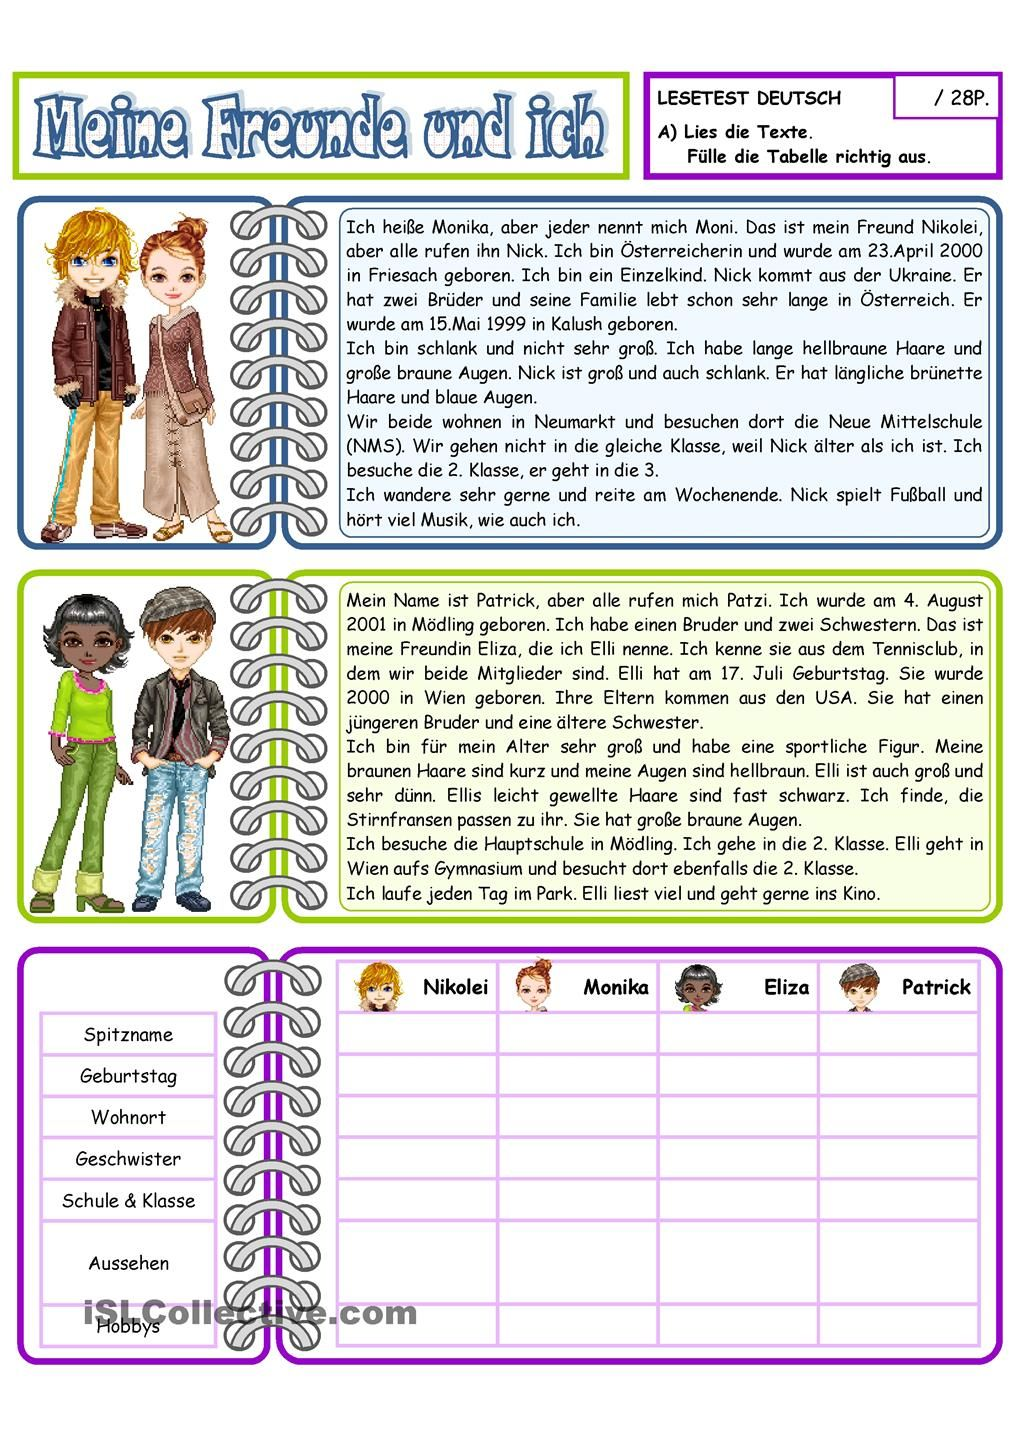 Pin By Anthony Moss On German Lesen German Language Learning German Language Learning German Worksheets